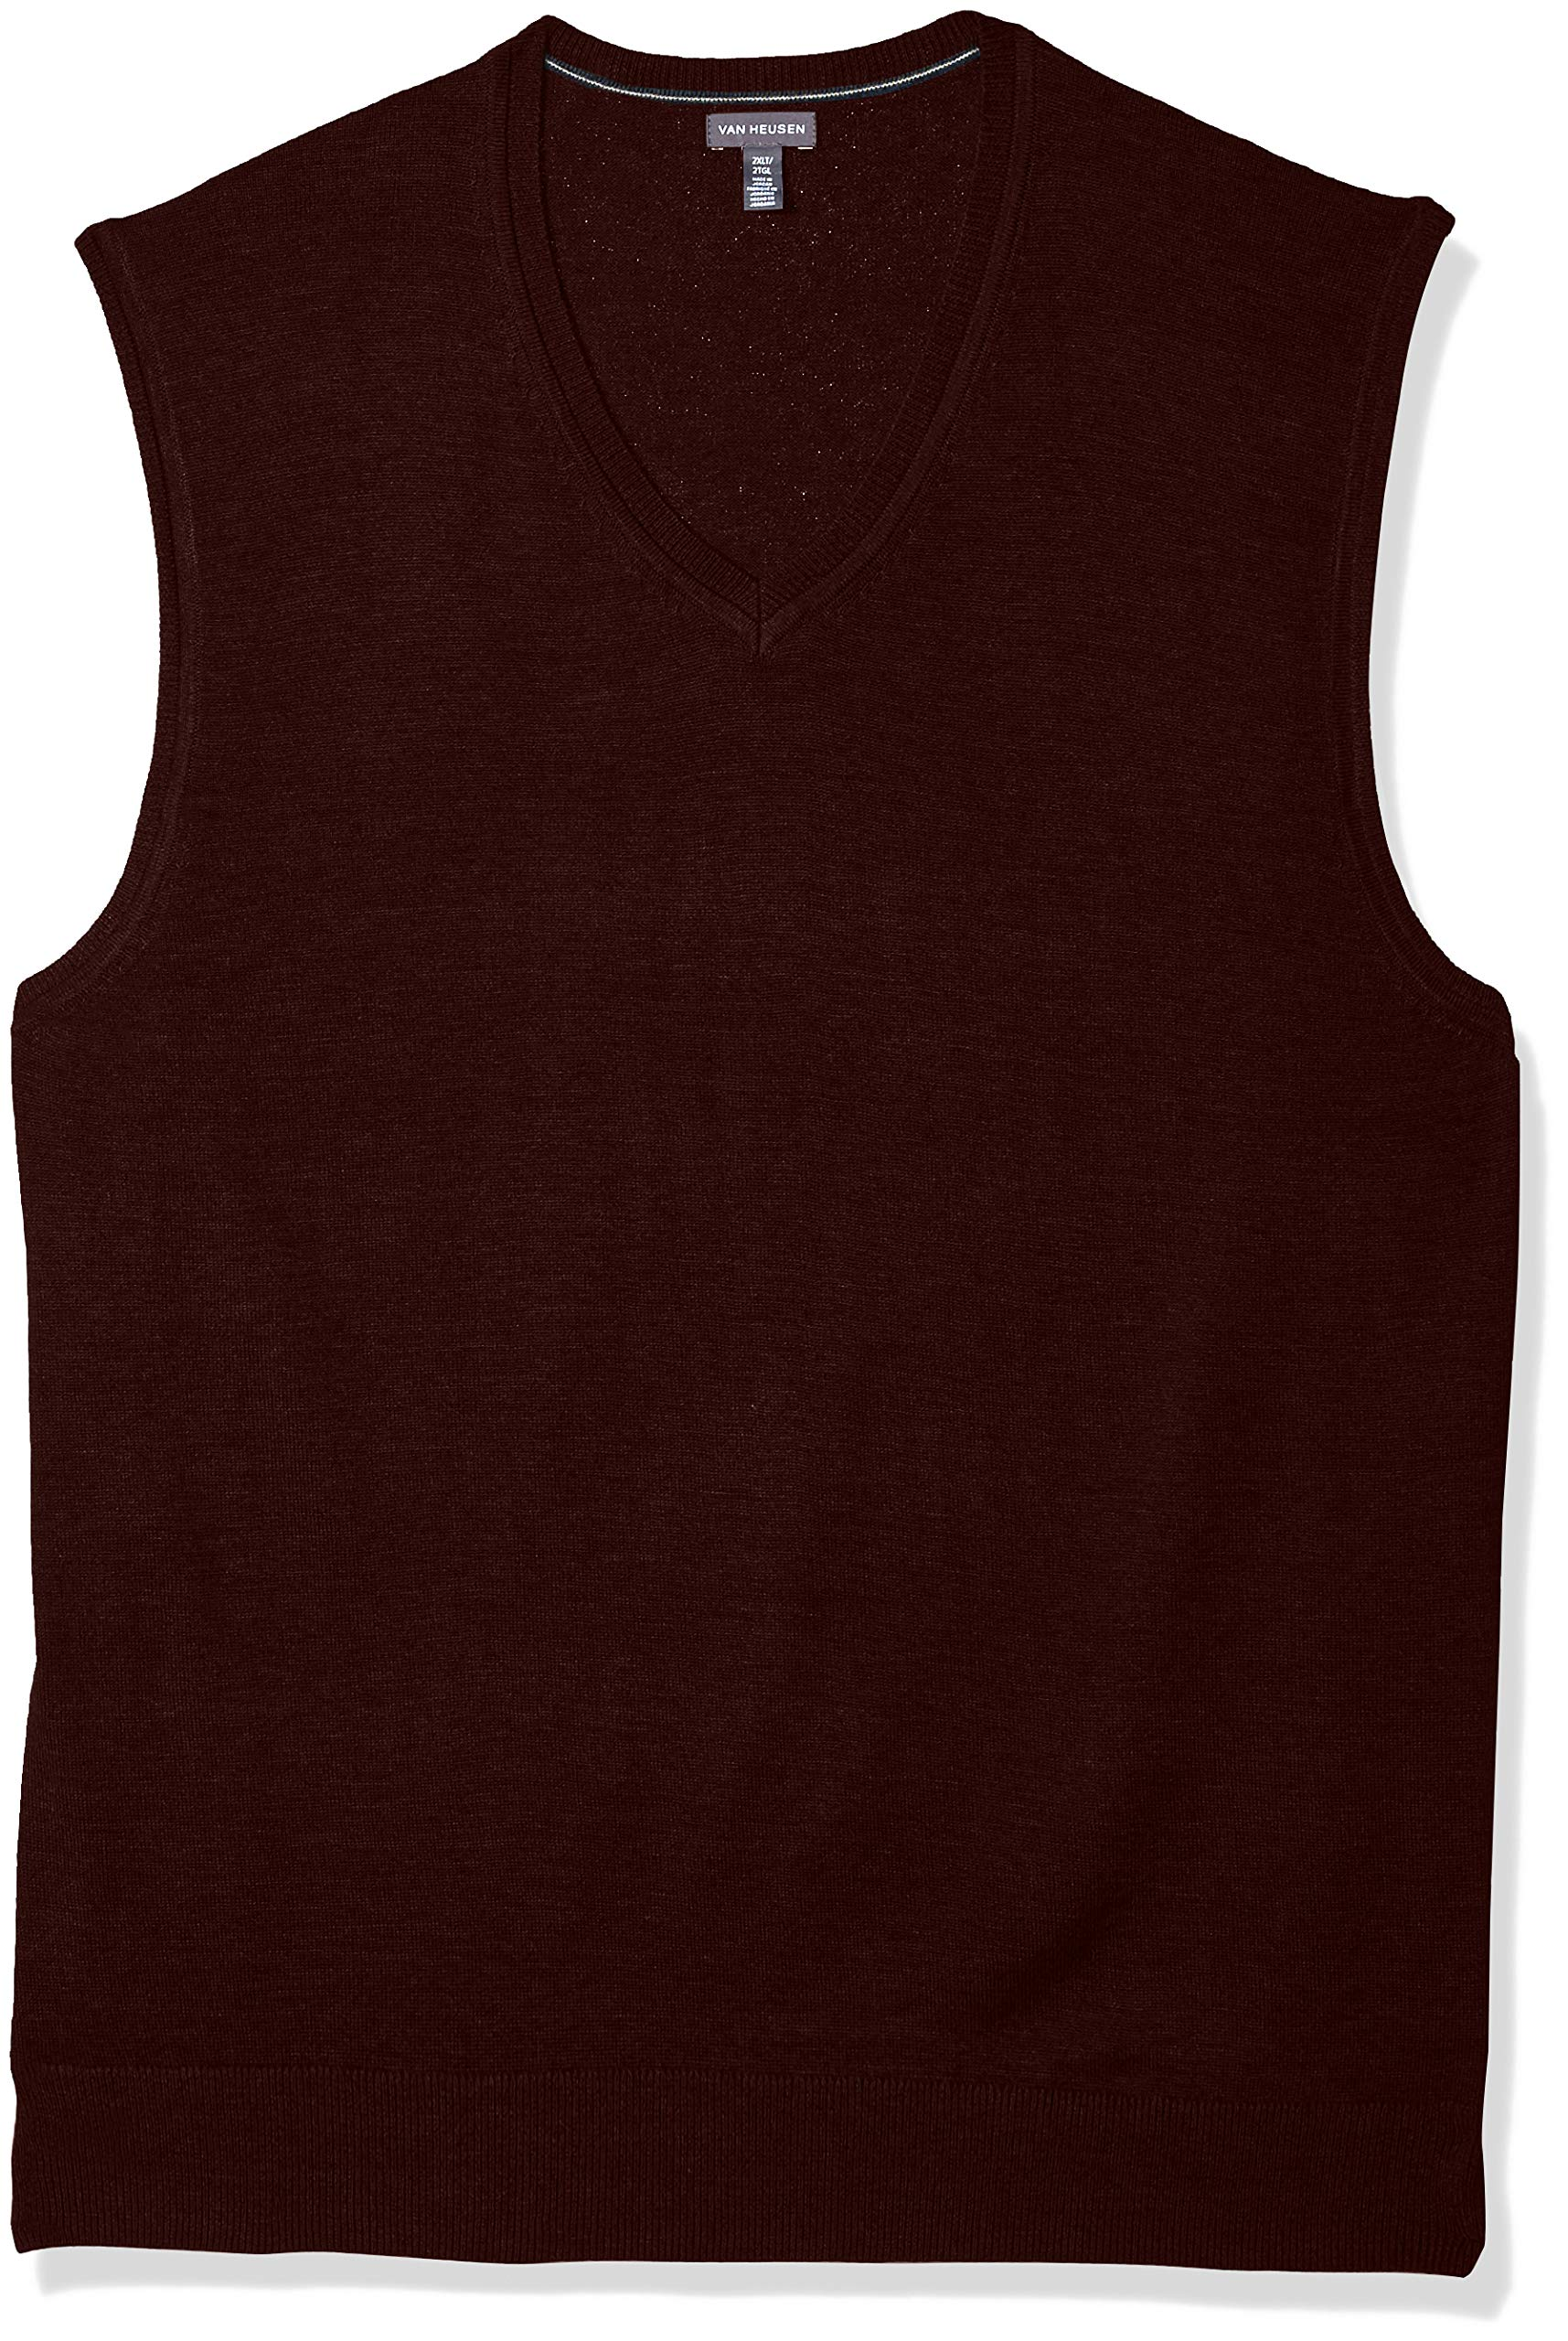 Van Heusen Men's Big and Tall Solid Sweater Vest 12GG, Cranberry Heather, Large